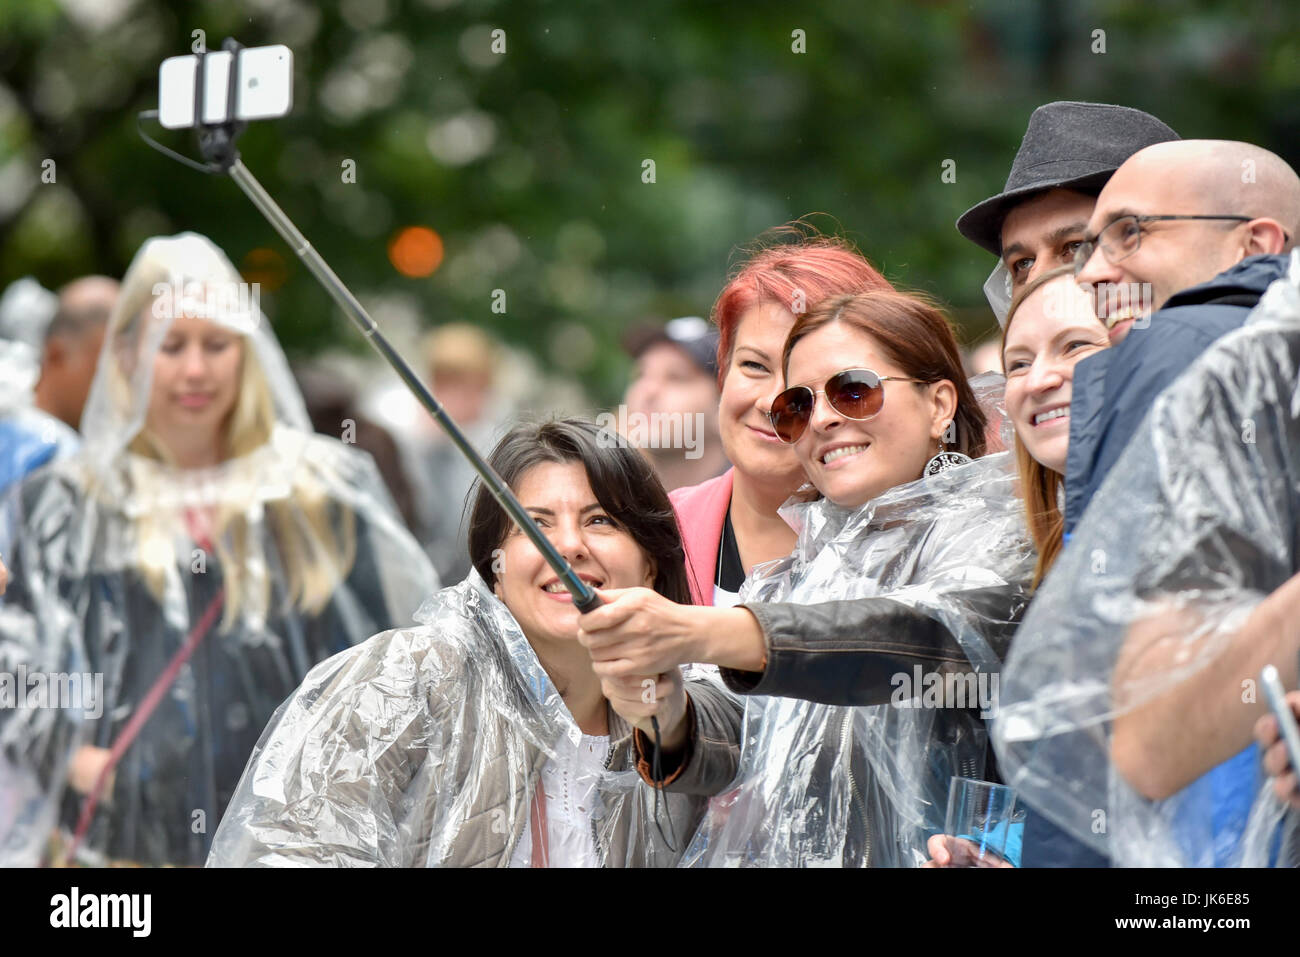 London, UK.  22 July 2017.   'Nashville Meets London', a country music festival, takes place in Canary Wharf. - Stock Image